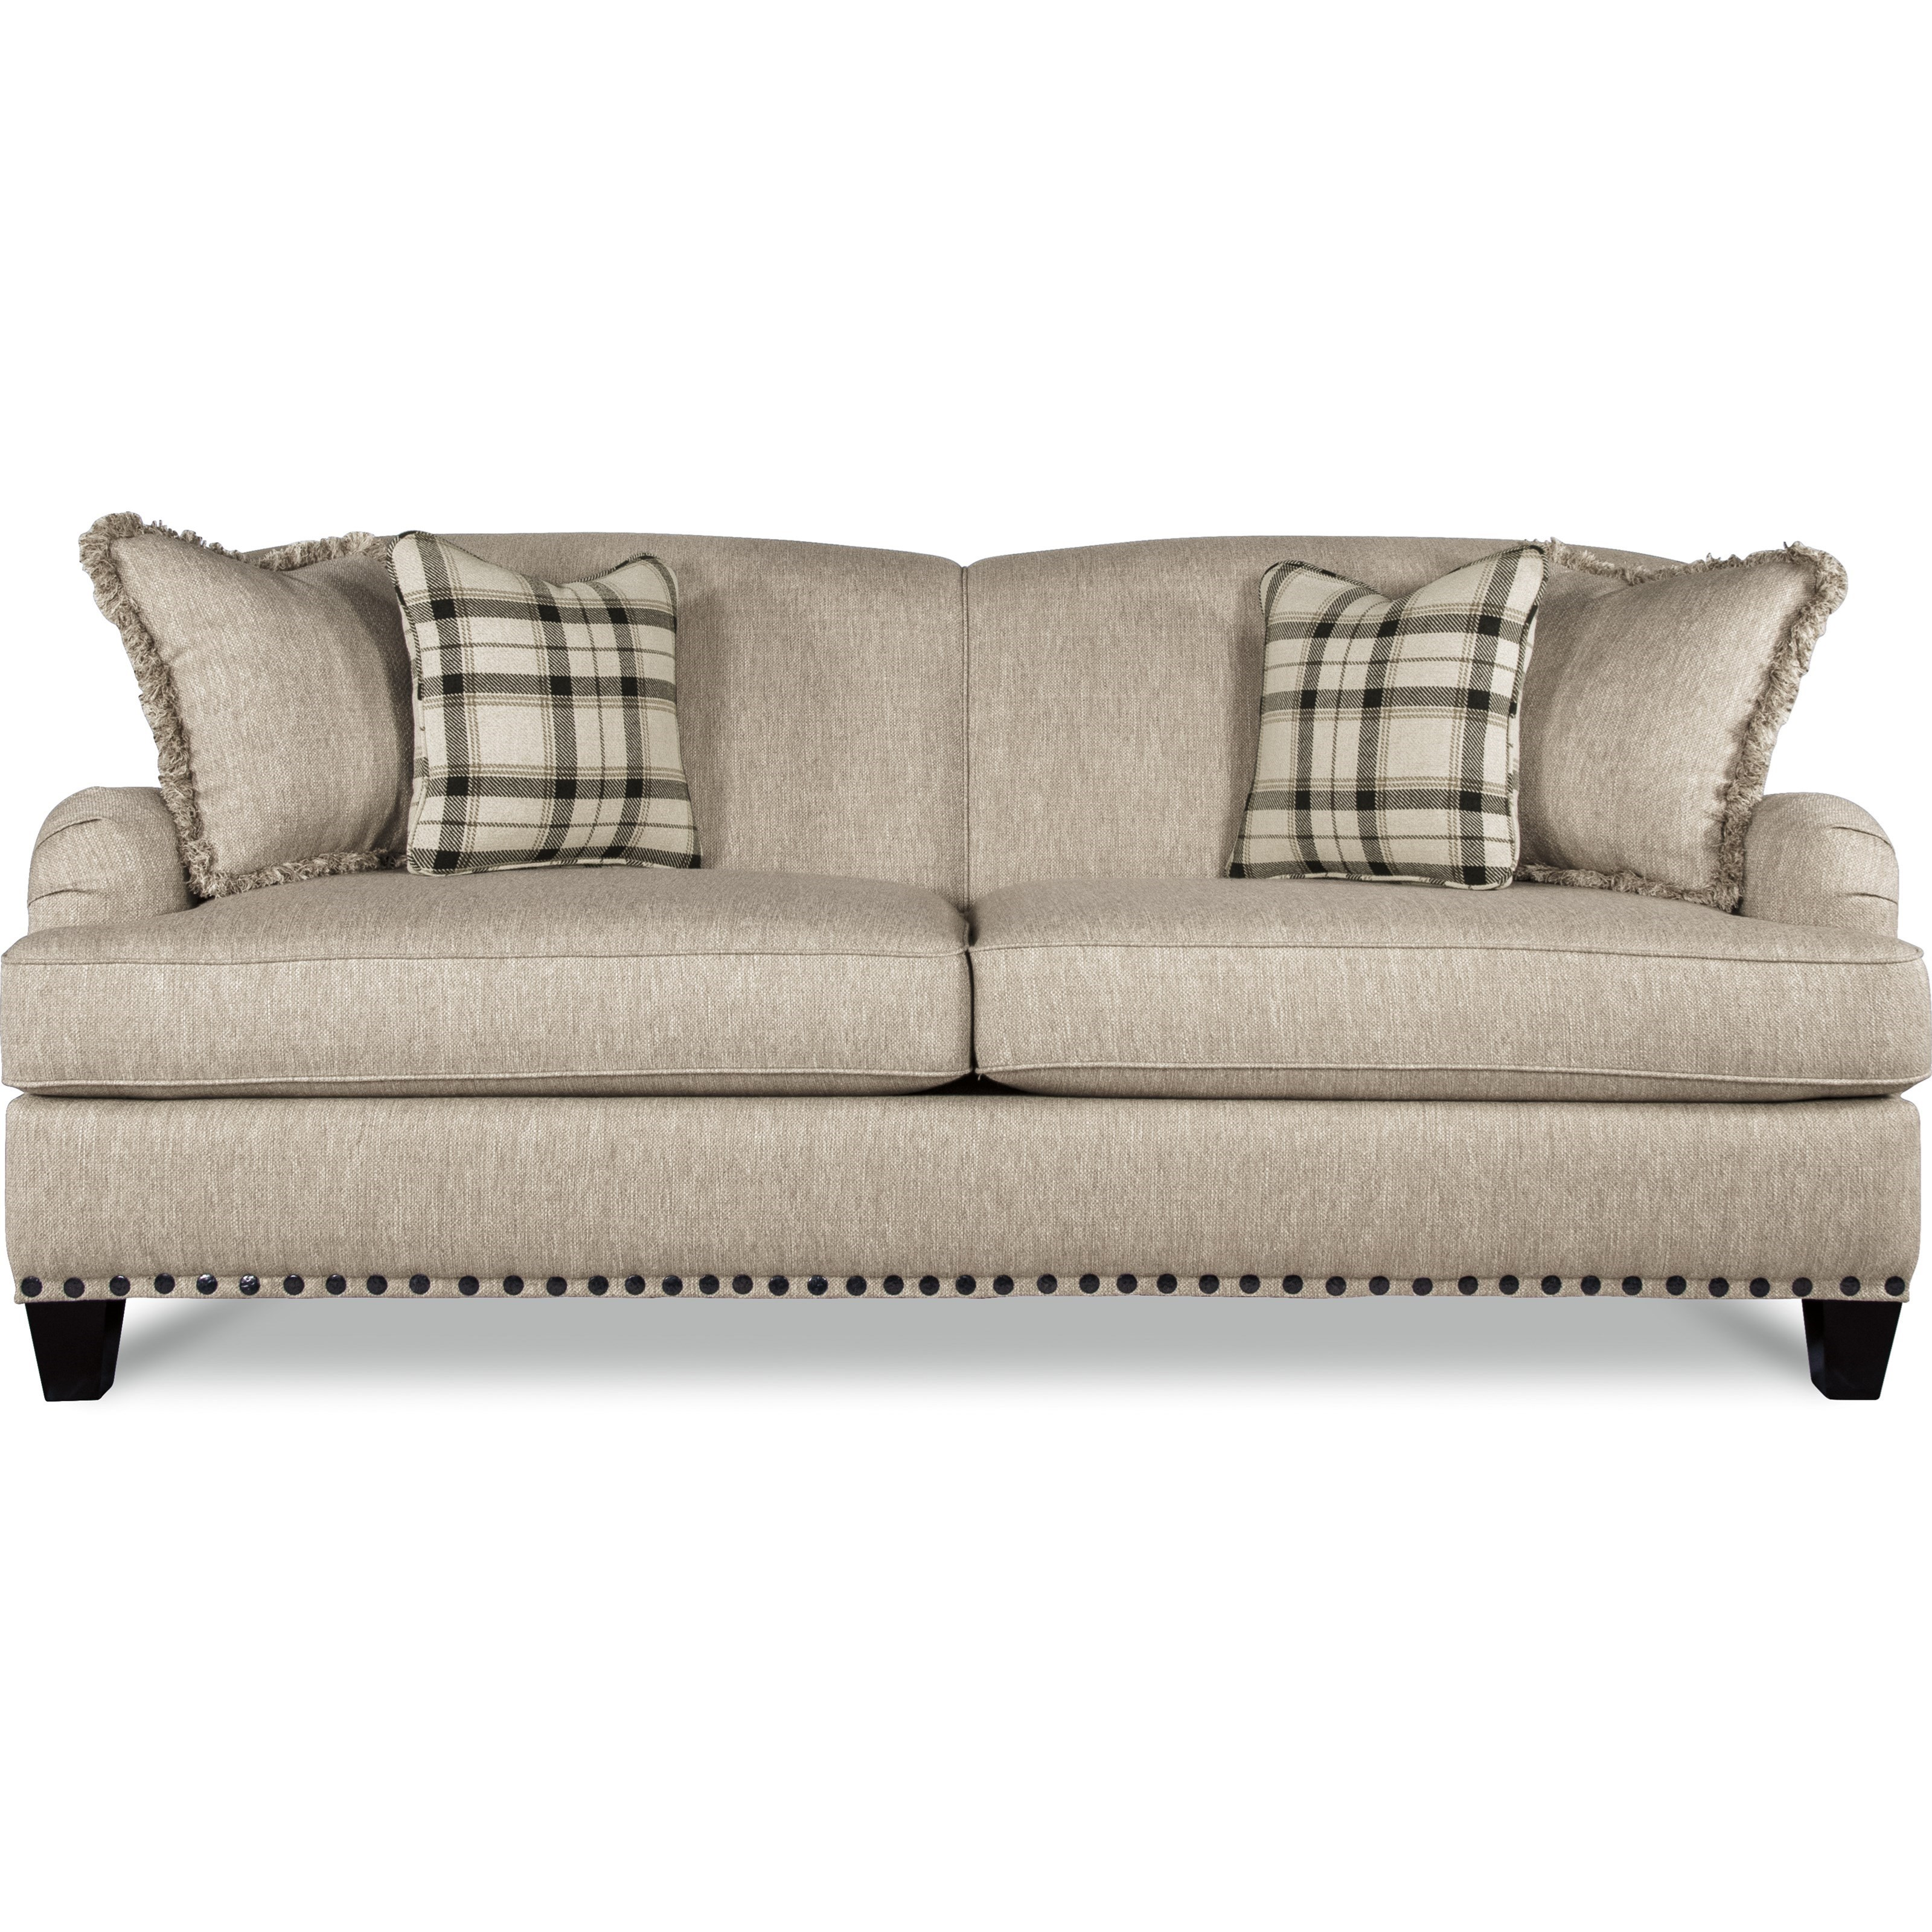 La z boy york traditional sofa with premier comfortcore cushions bennett 39 s home furnishings - Sofa york ...